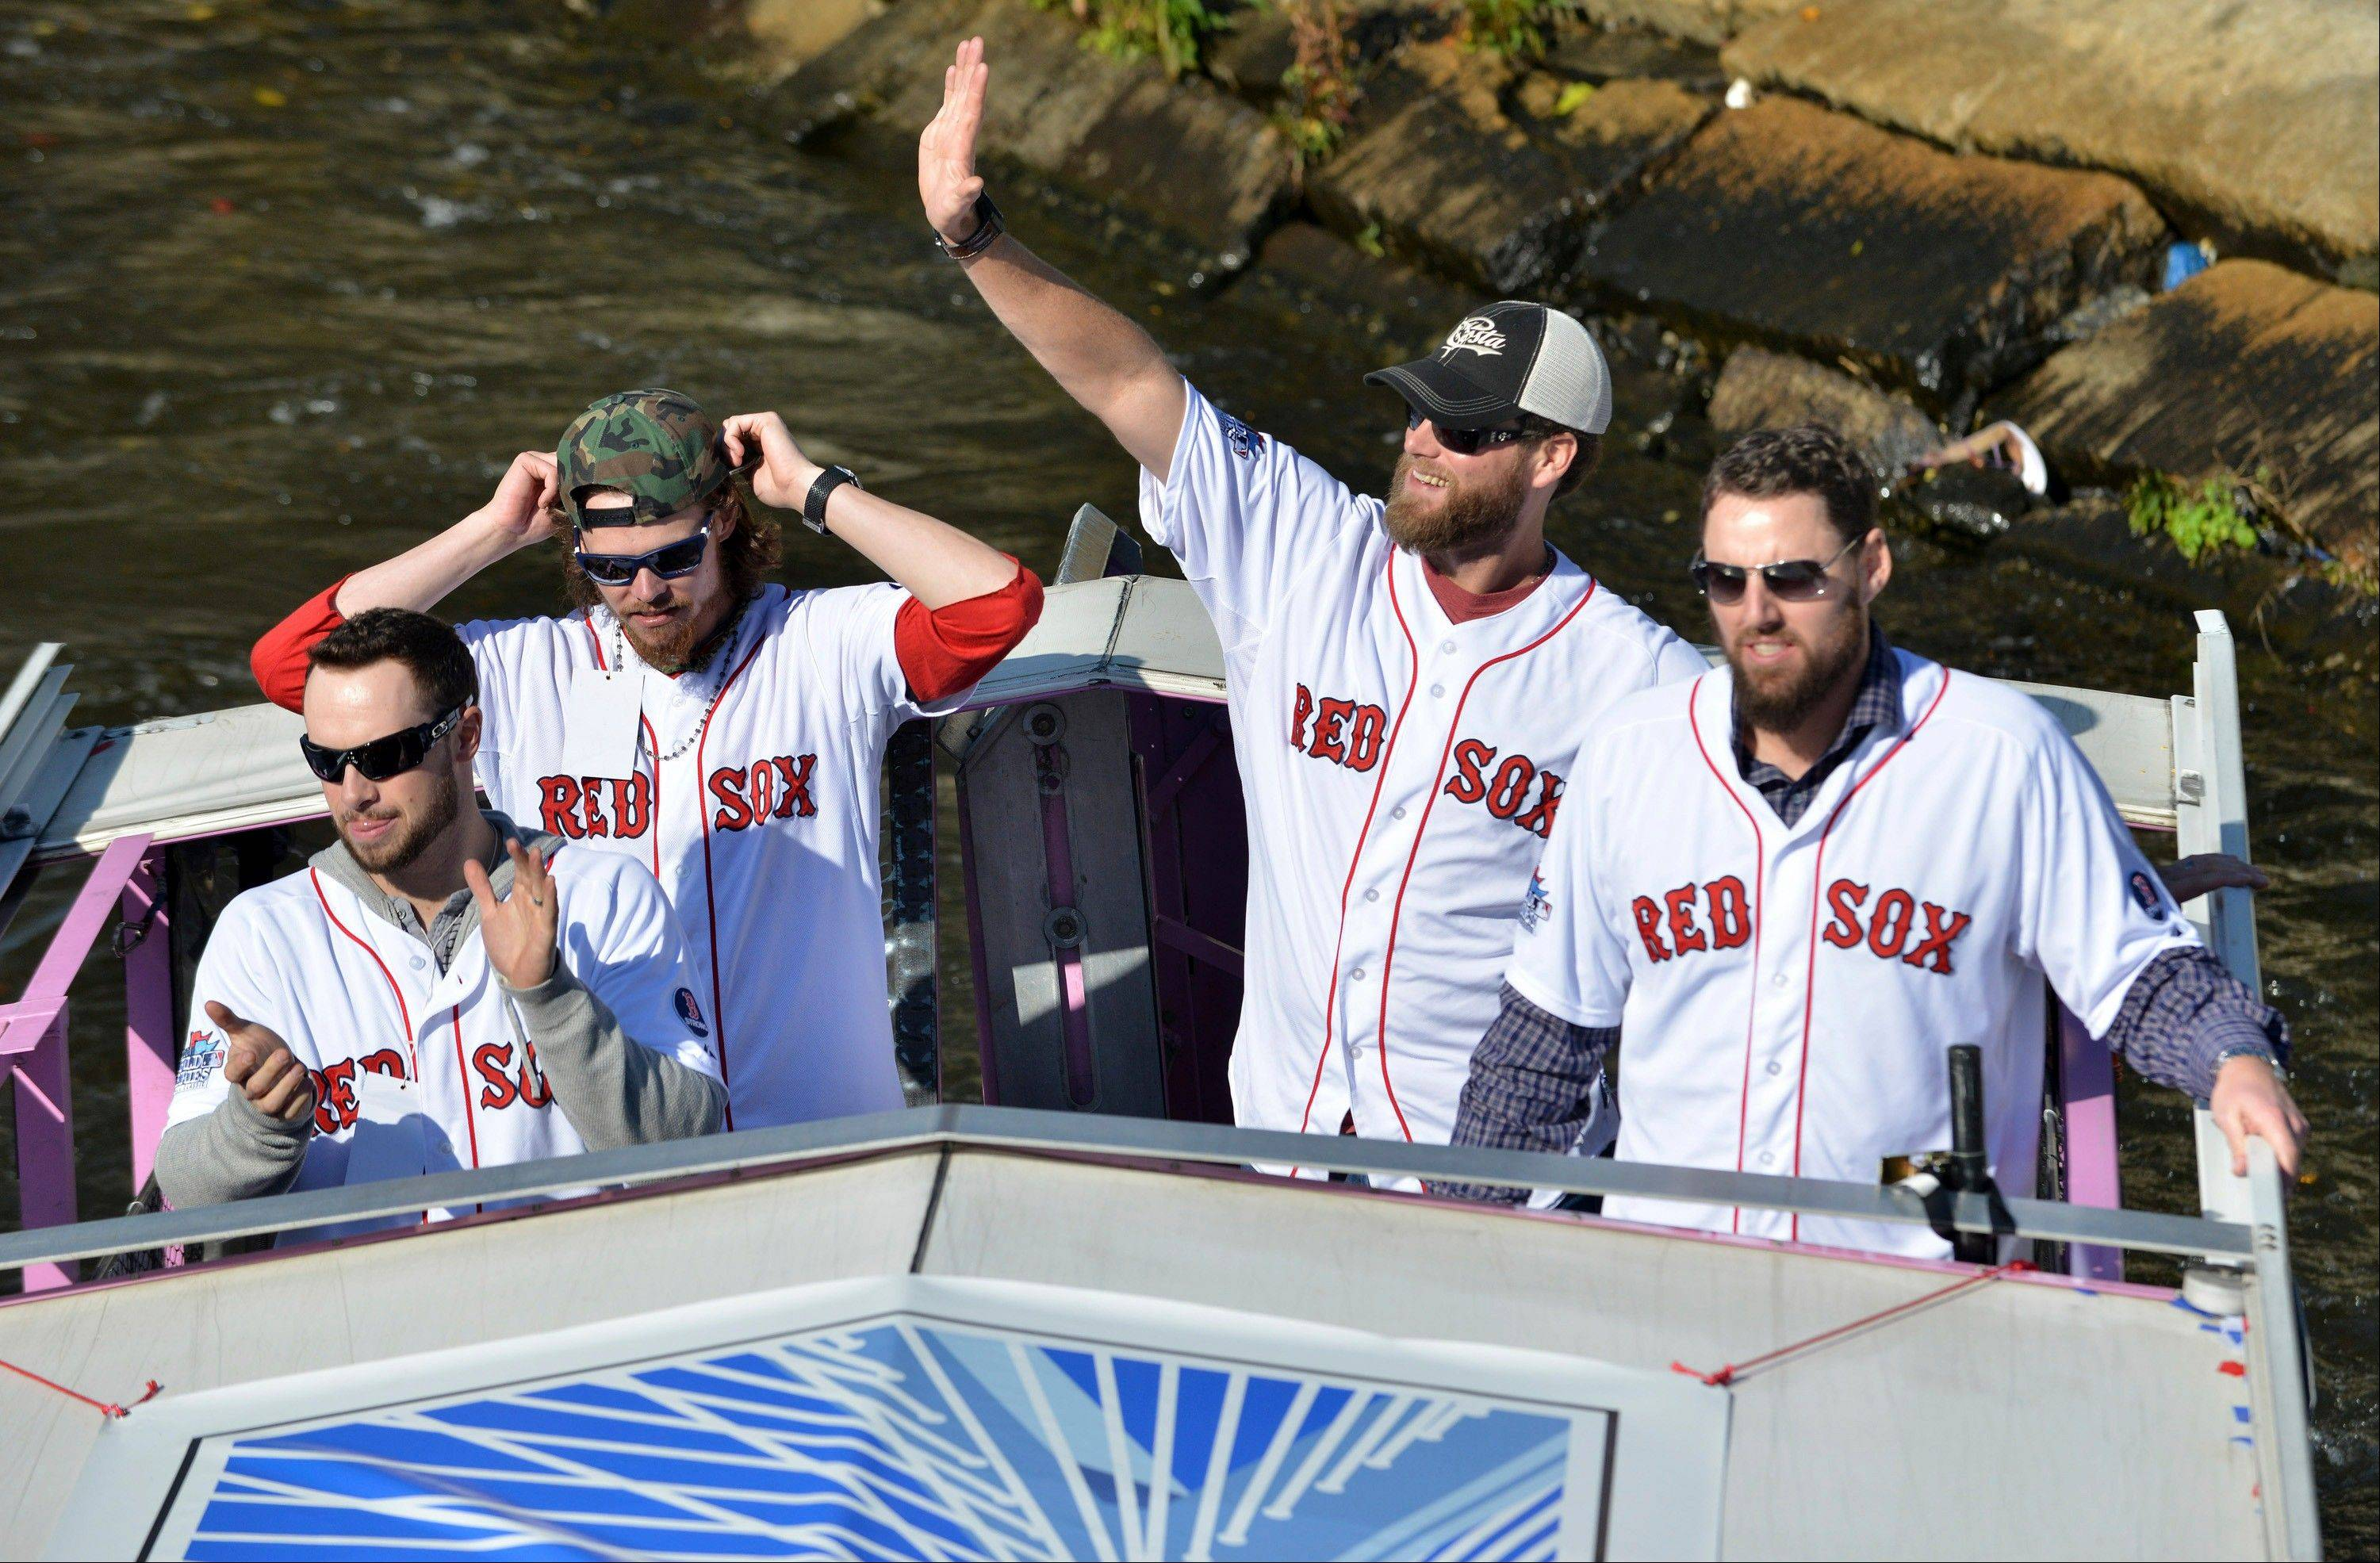 Boston Red Sox players, from left, Daniel Nava, Clay Buccholz, Matt Thornton and John Lackey float along the Charles River in an amphibious duck boat during a victory parade celebrating the team's World Series title Saturday.